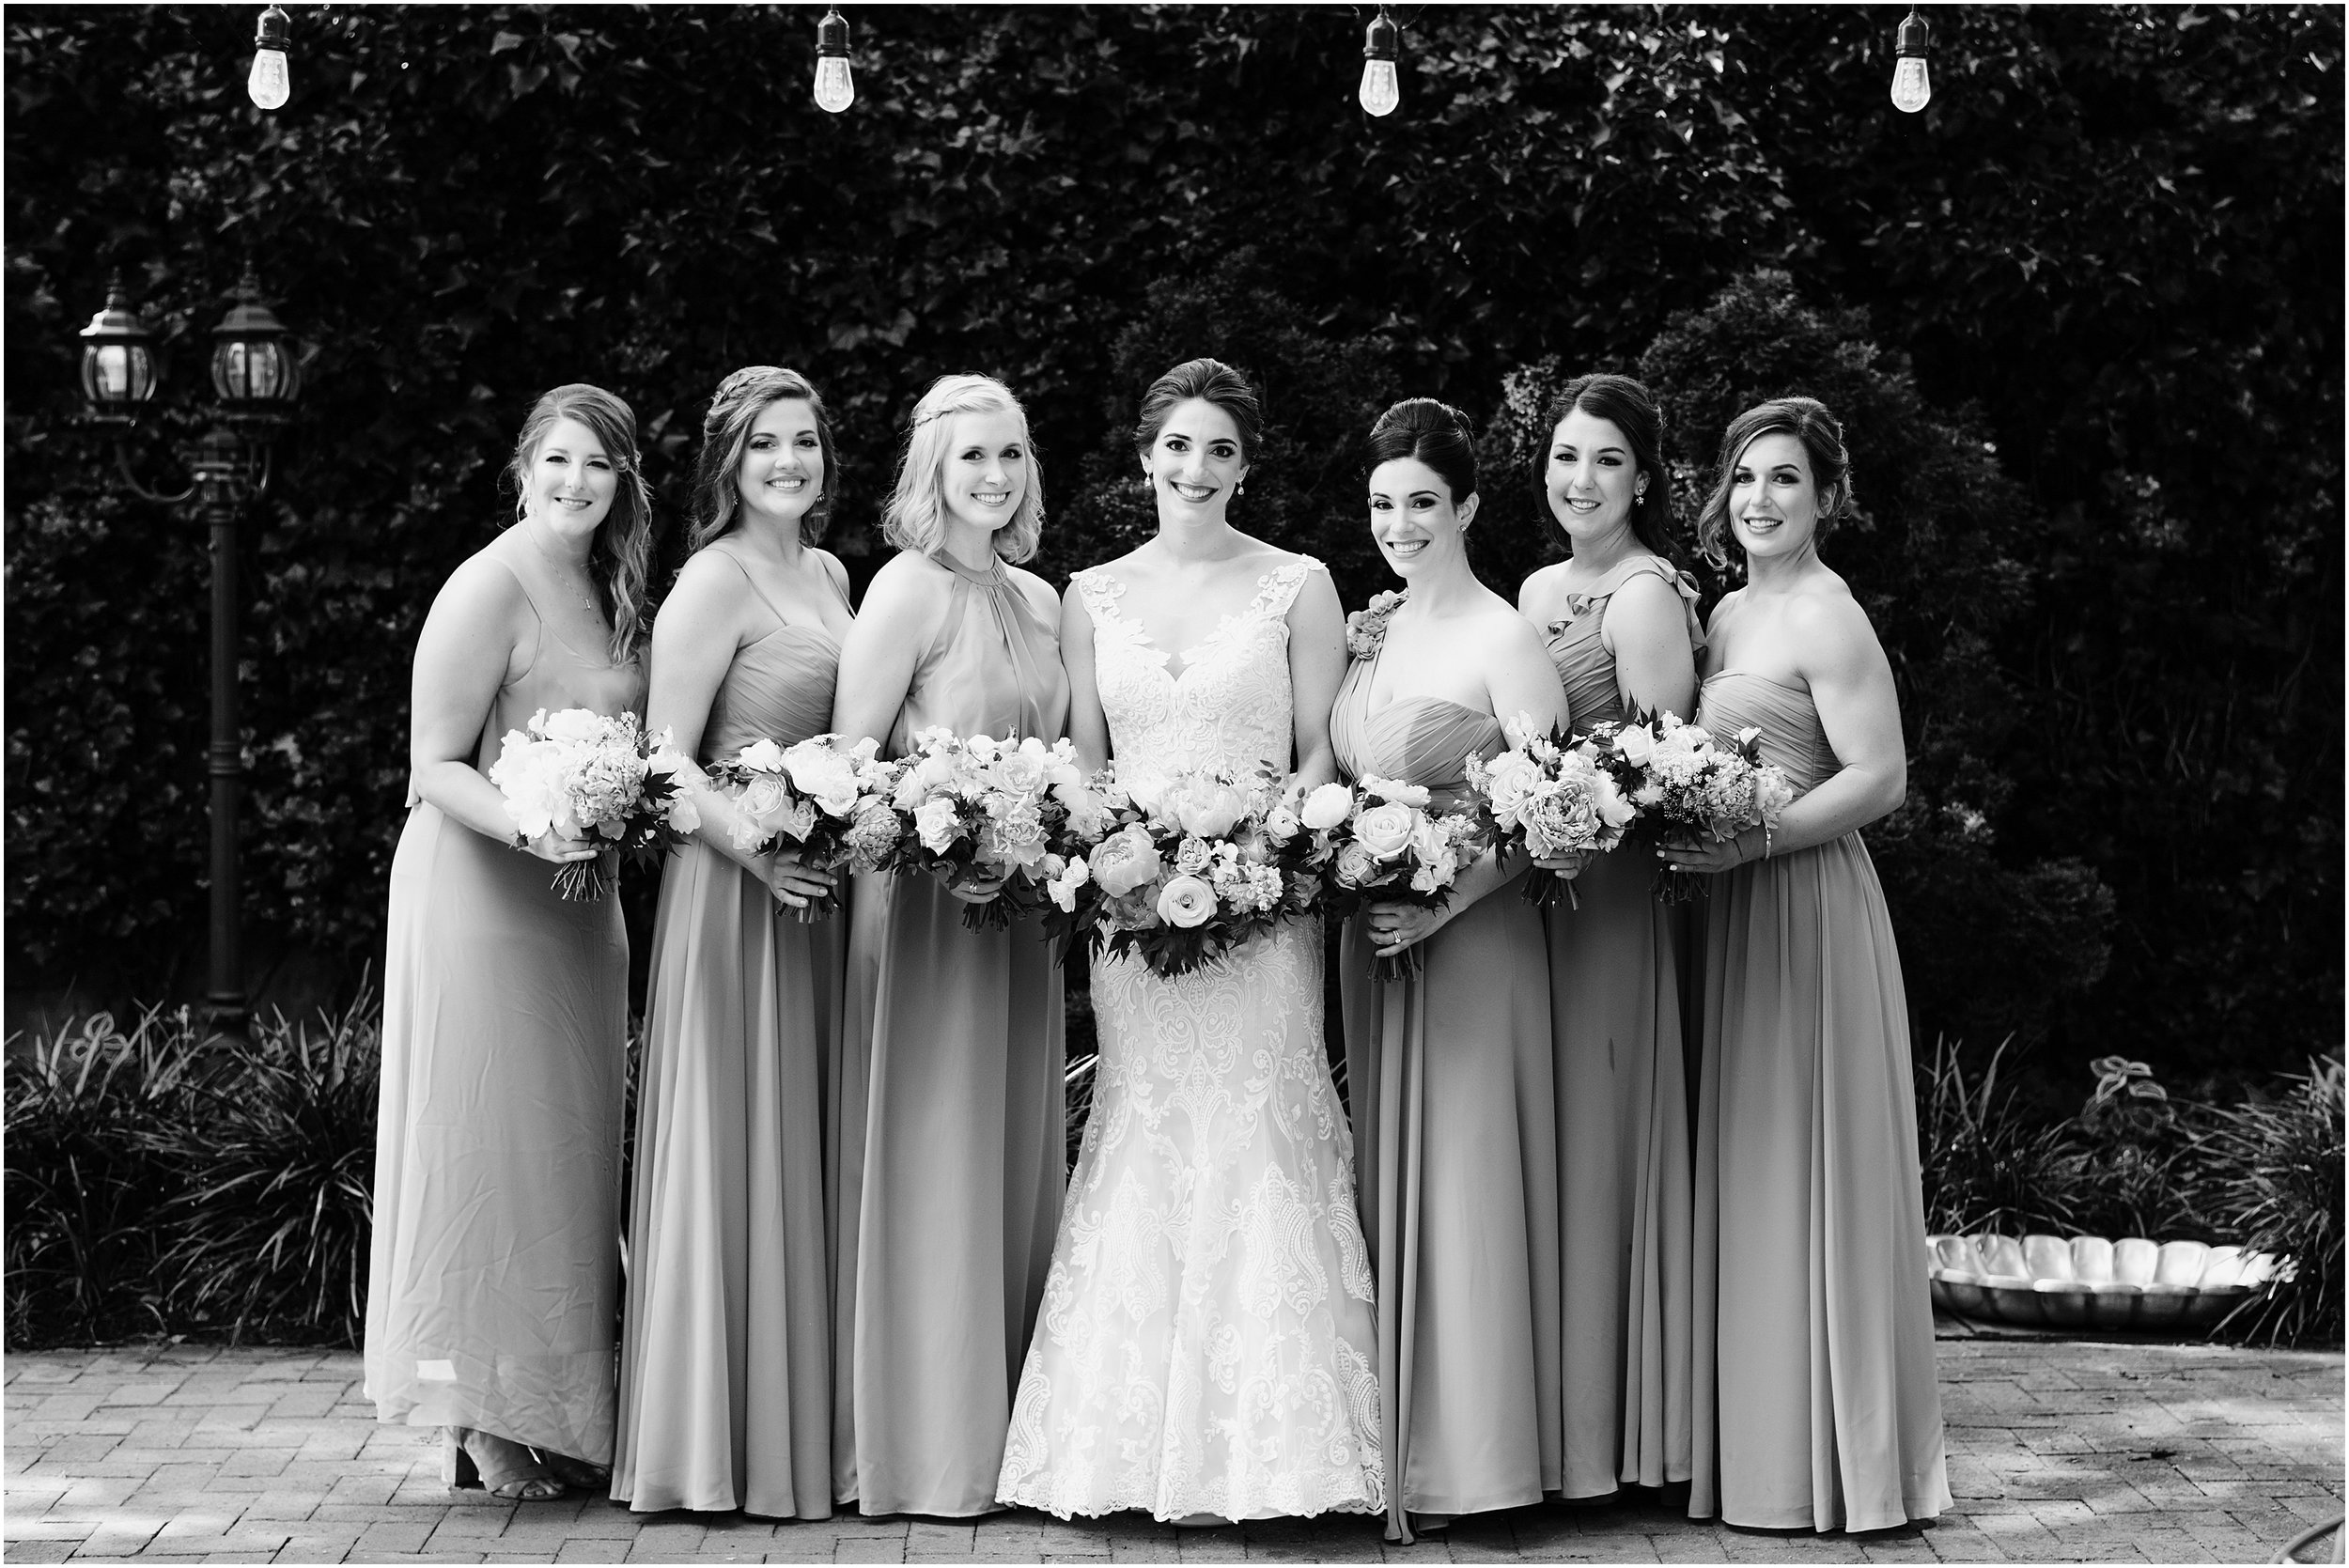 hannah leigh photography 1840s plaza wedding baltimore md_0138.jpg